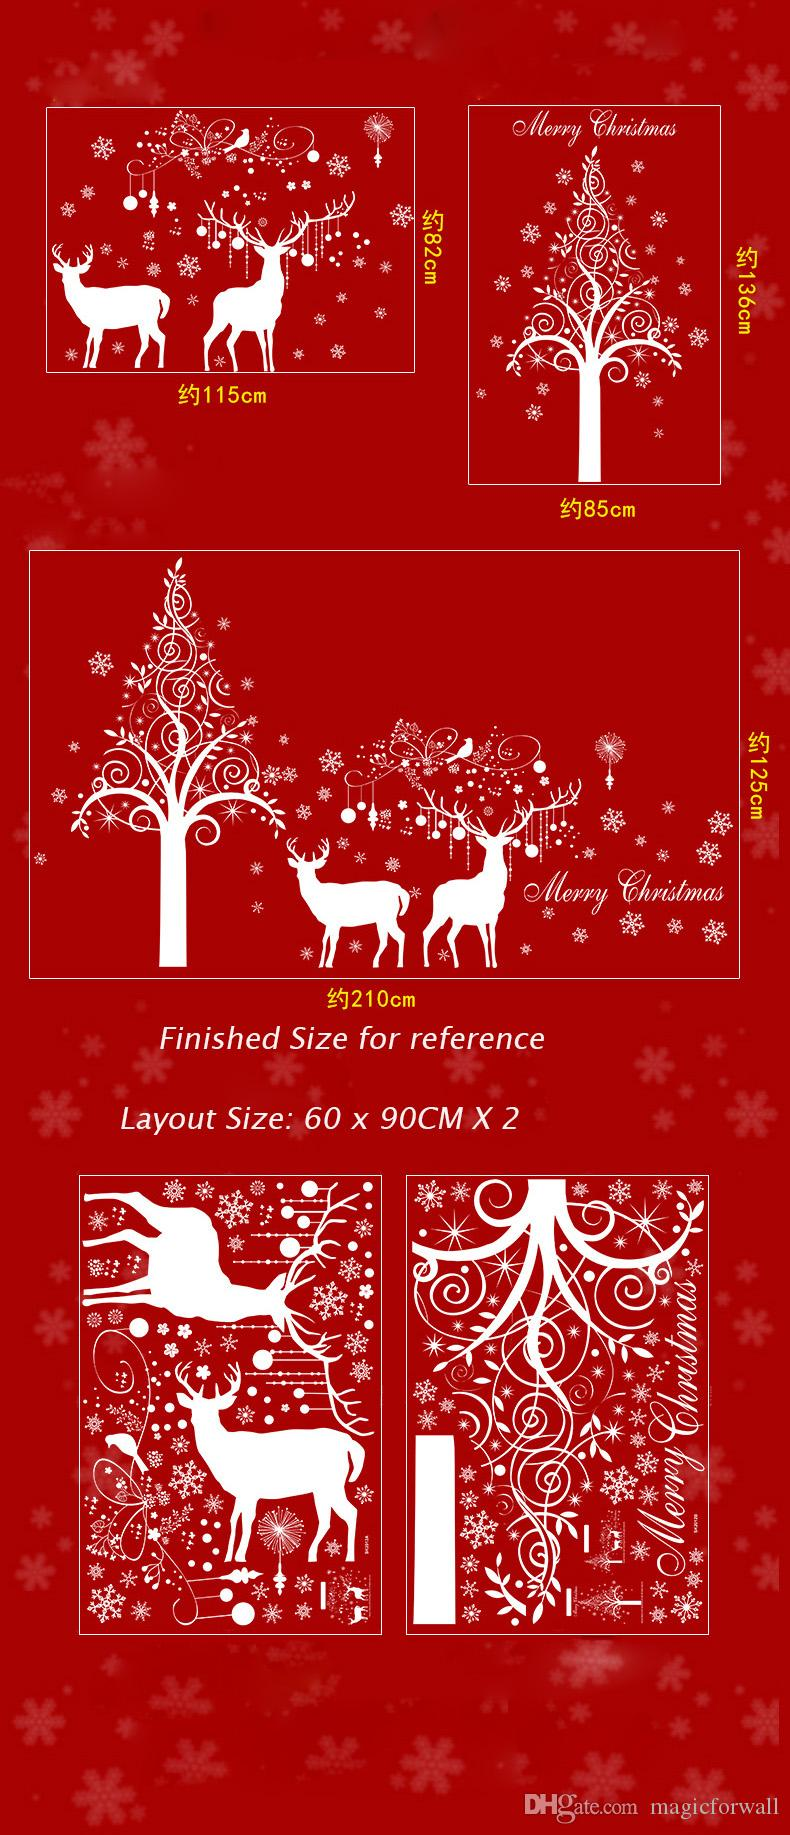 Super Large White Snowflake Elk Deer Tree Branches Birds Wall Sticker Christmas Winter Window Glass Decor Wall Poster Mural Festival Graphic